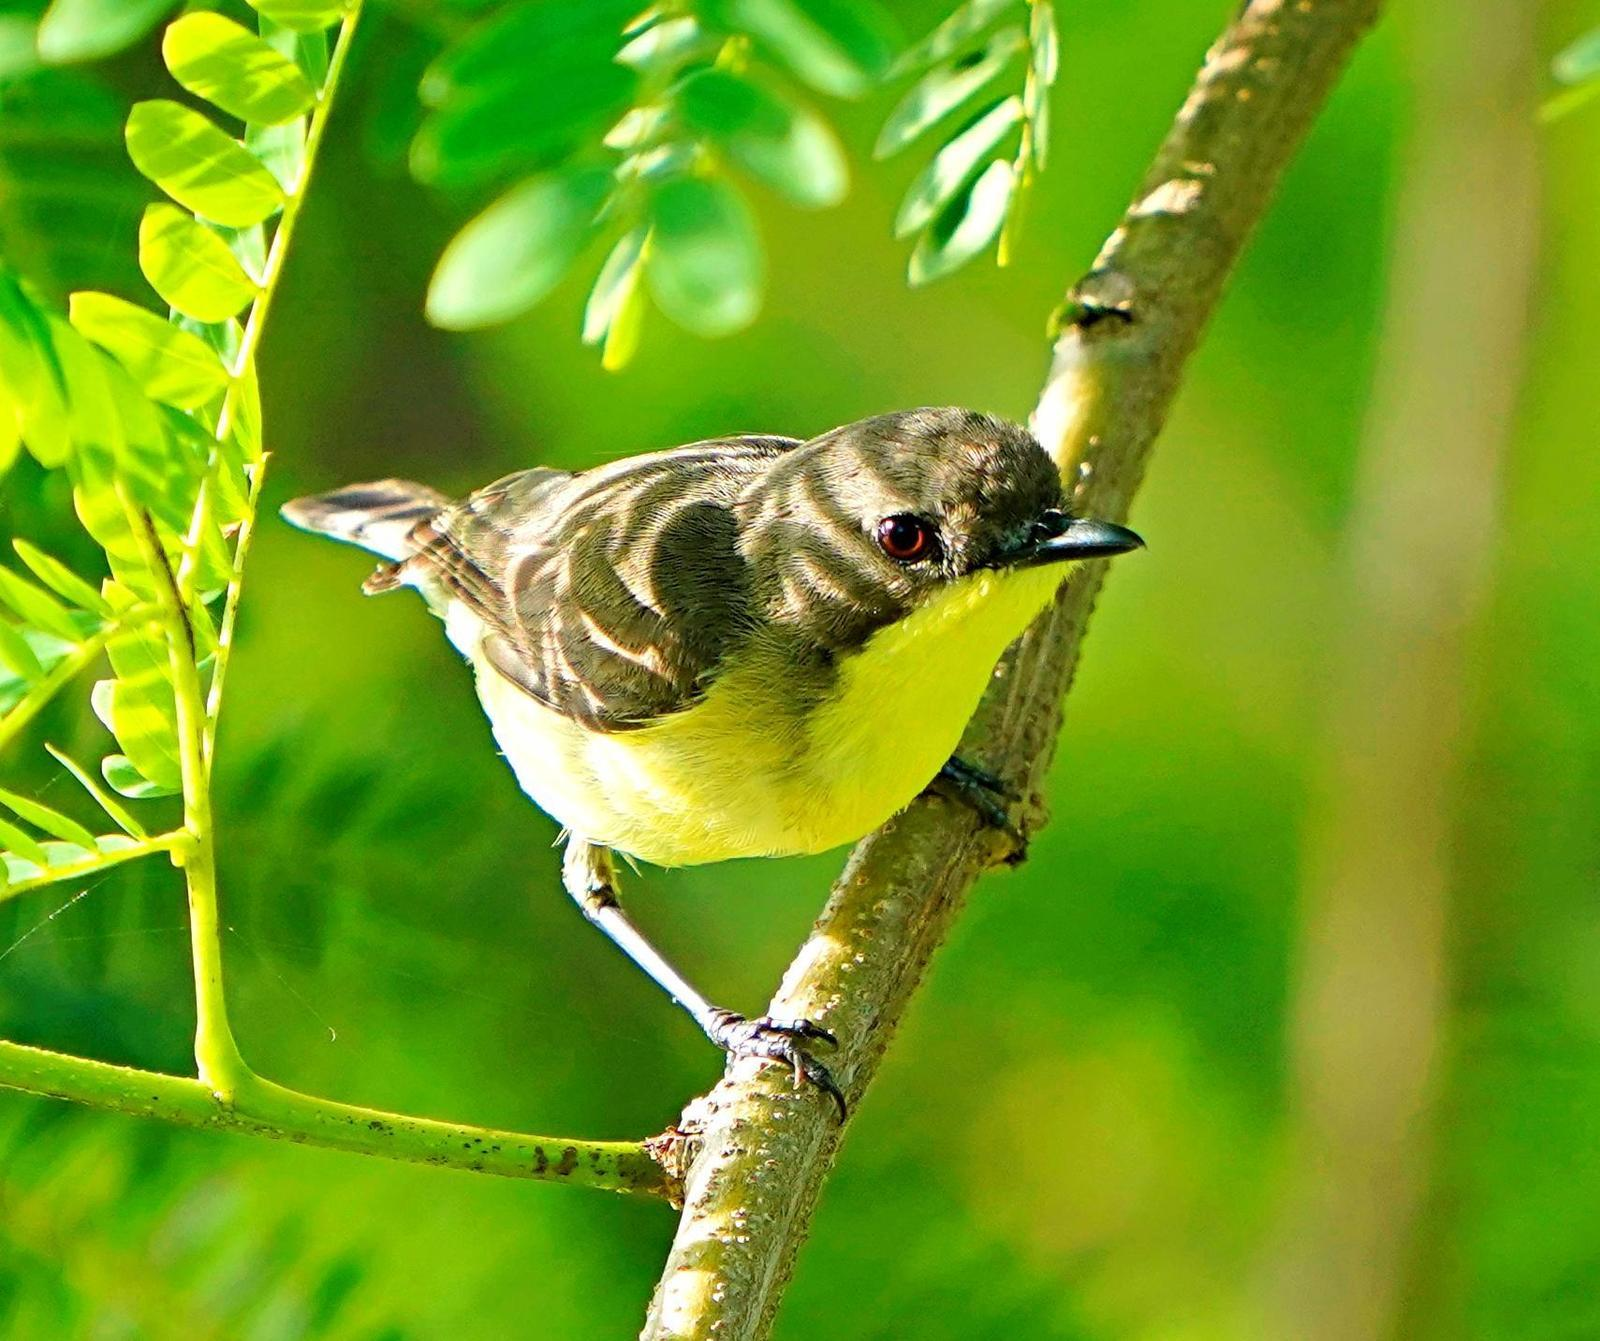 Golden-bellied Gerygone Photo by Steven Cheong